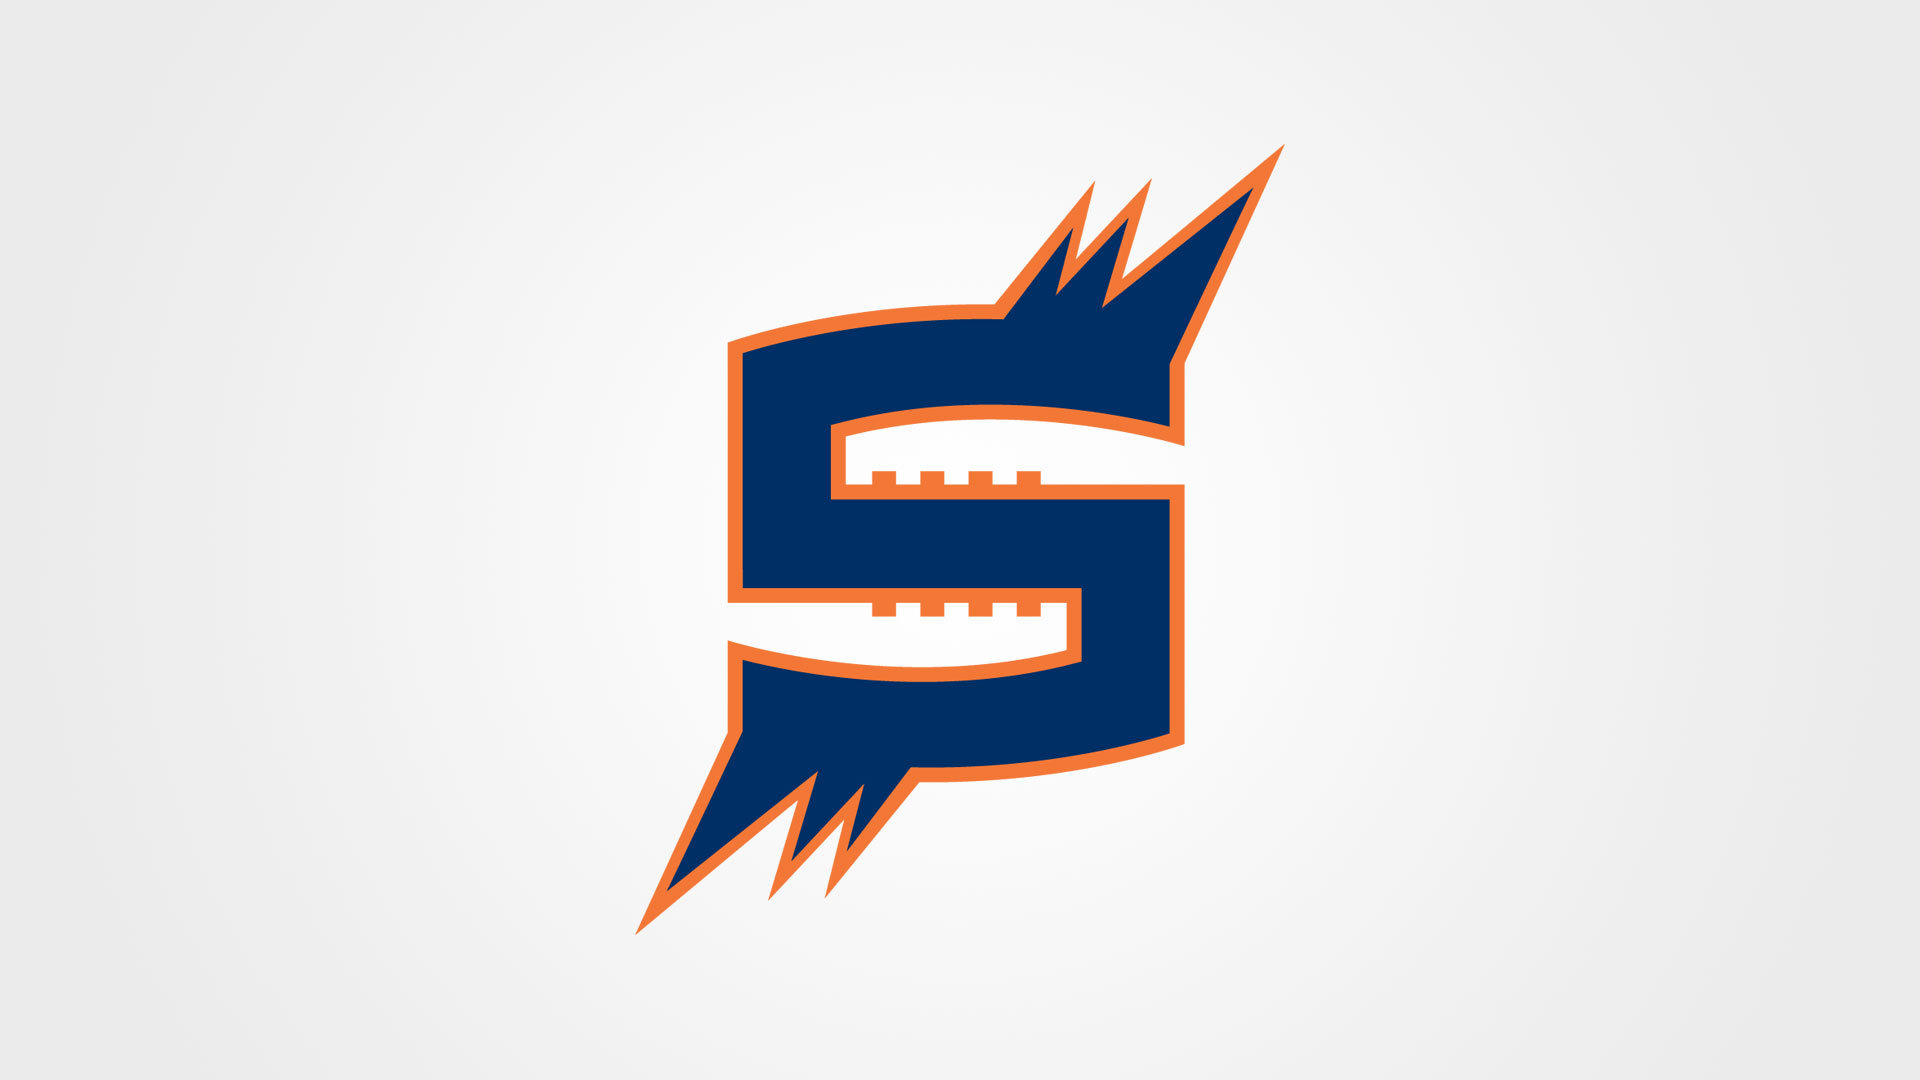 Spokane Shock 2010